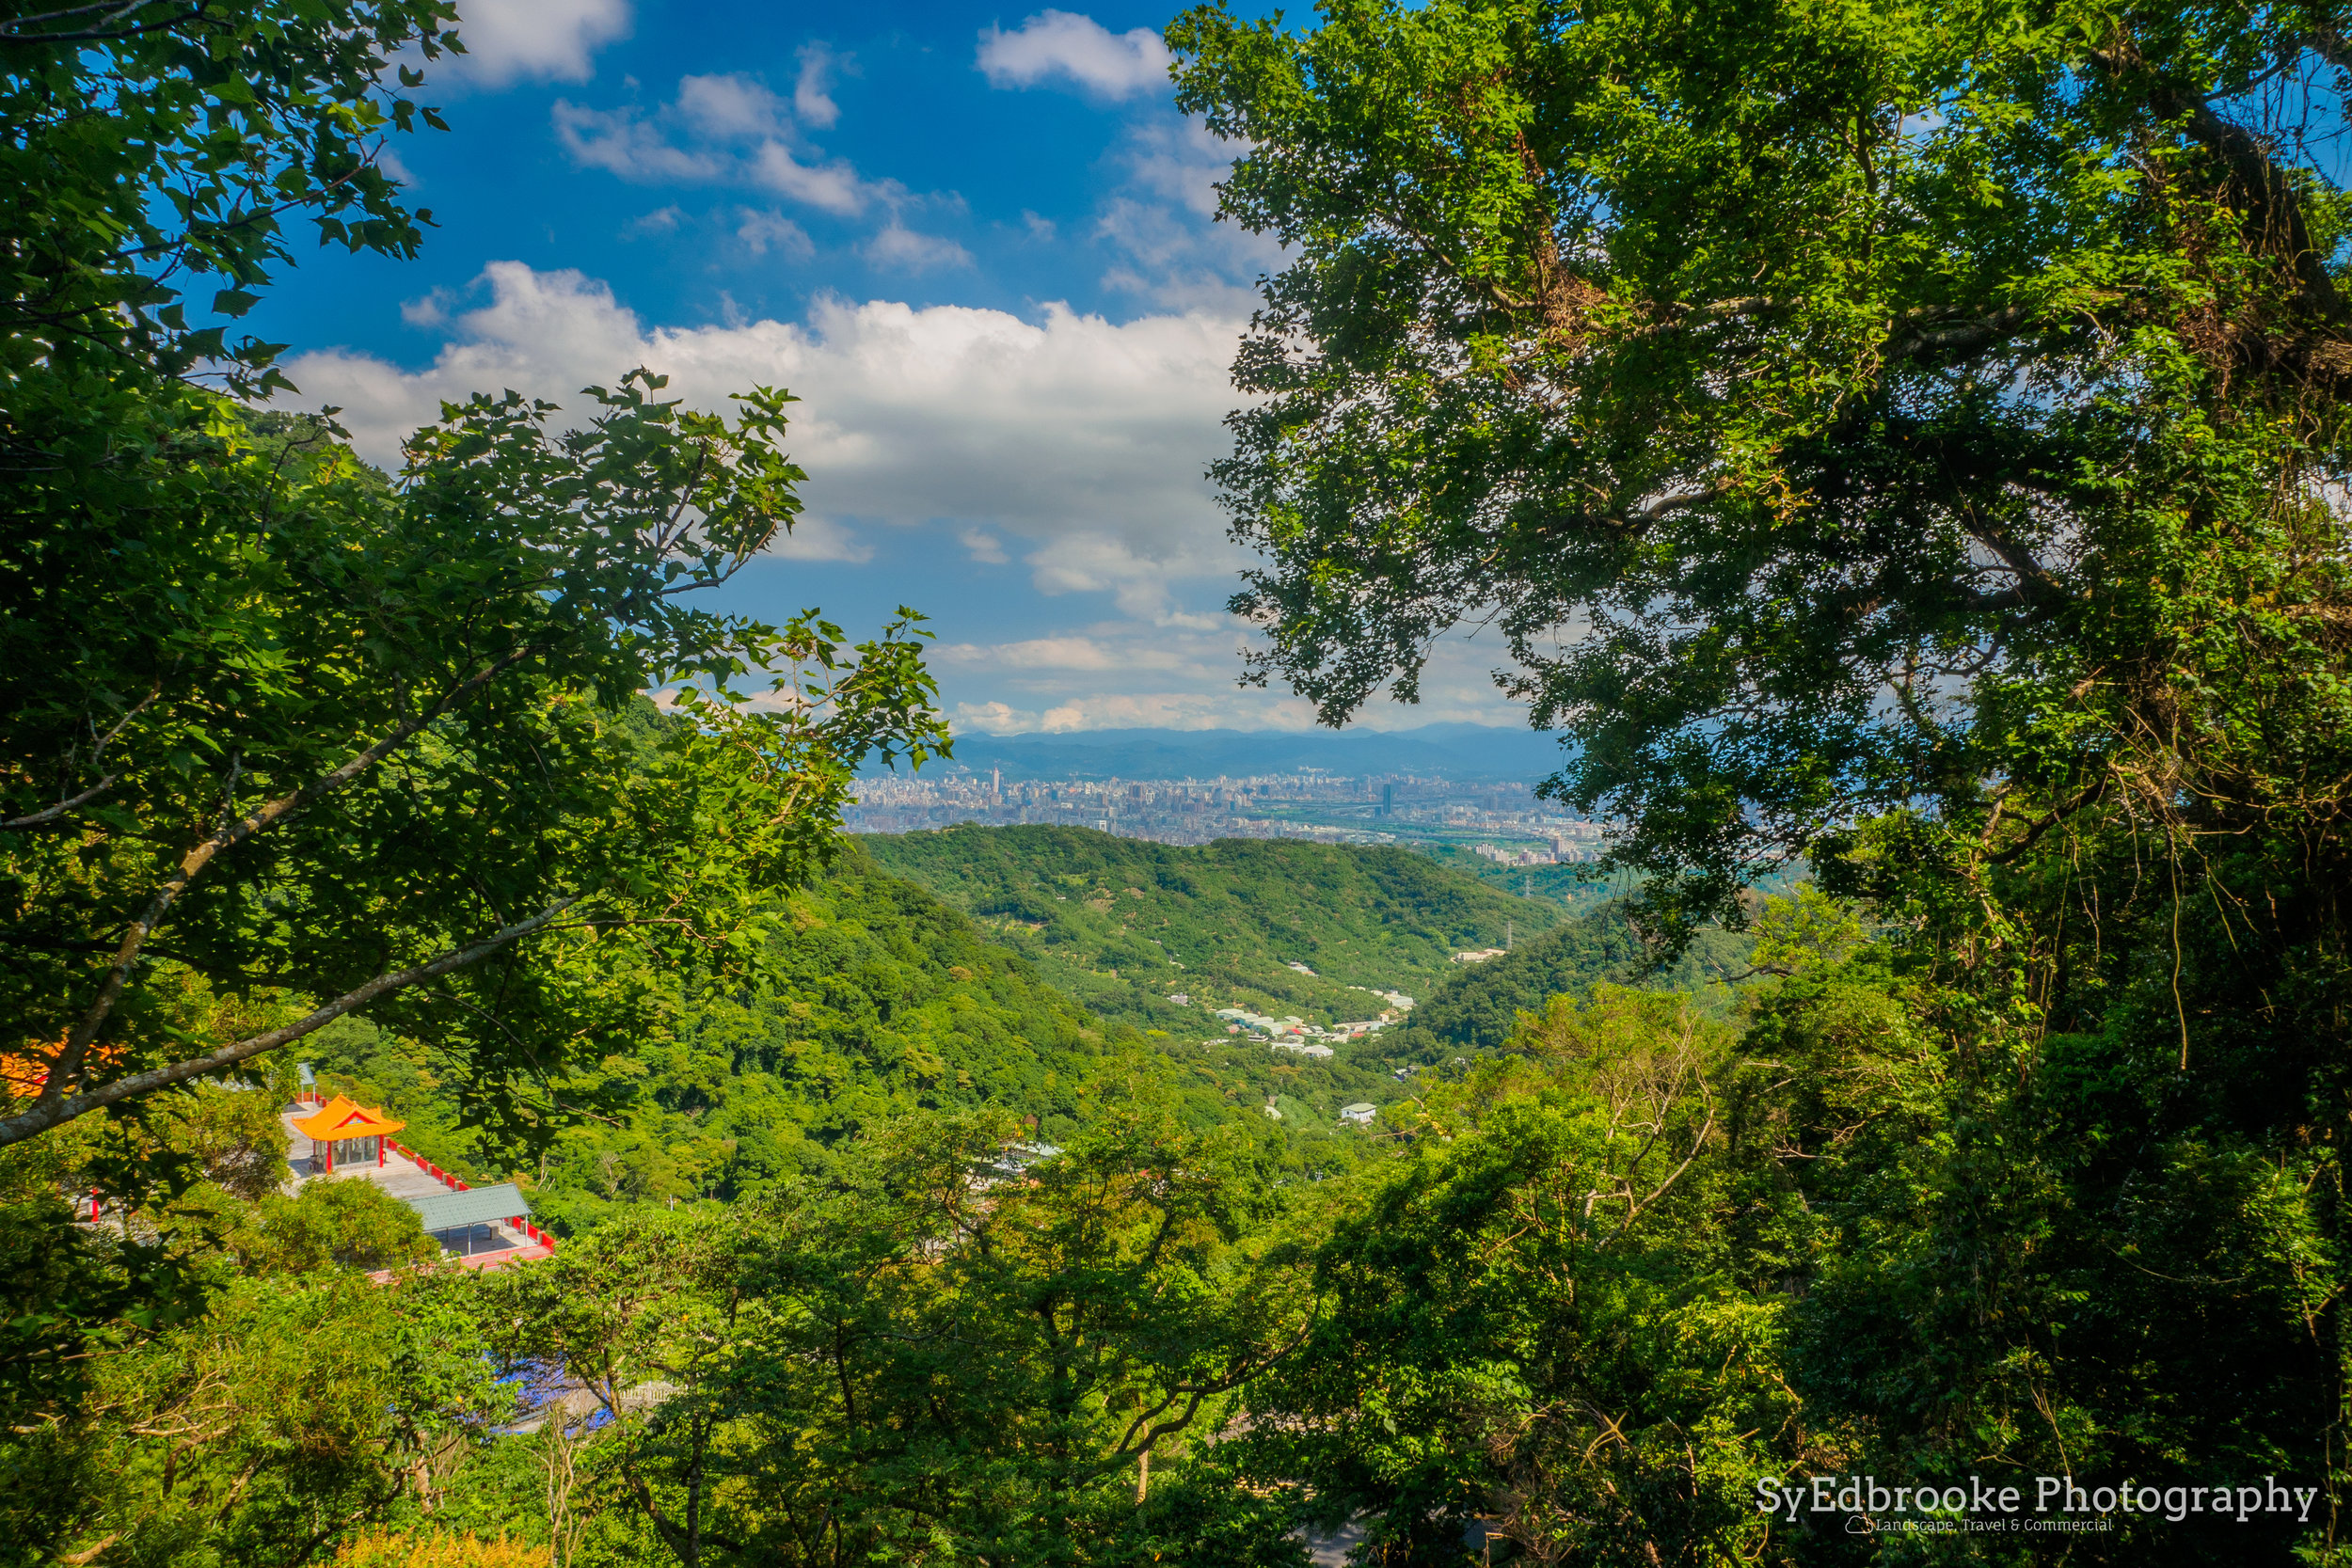 Looking back over the start of the hike towards New Taipei City. f13, ISO 200, 1/30, 24mm